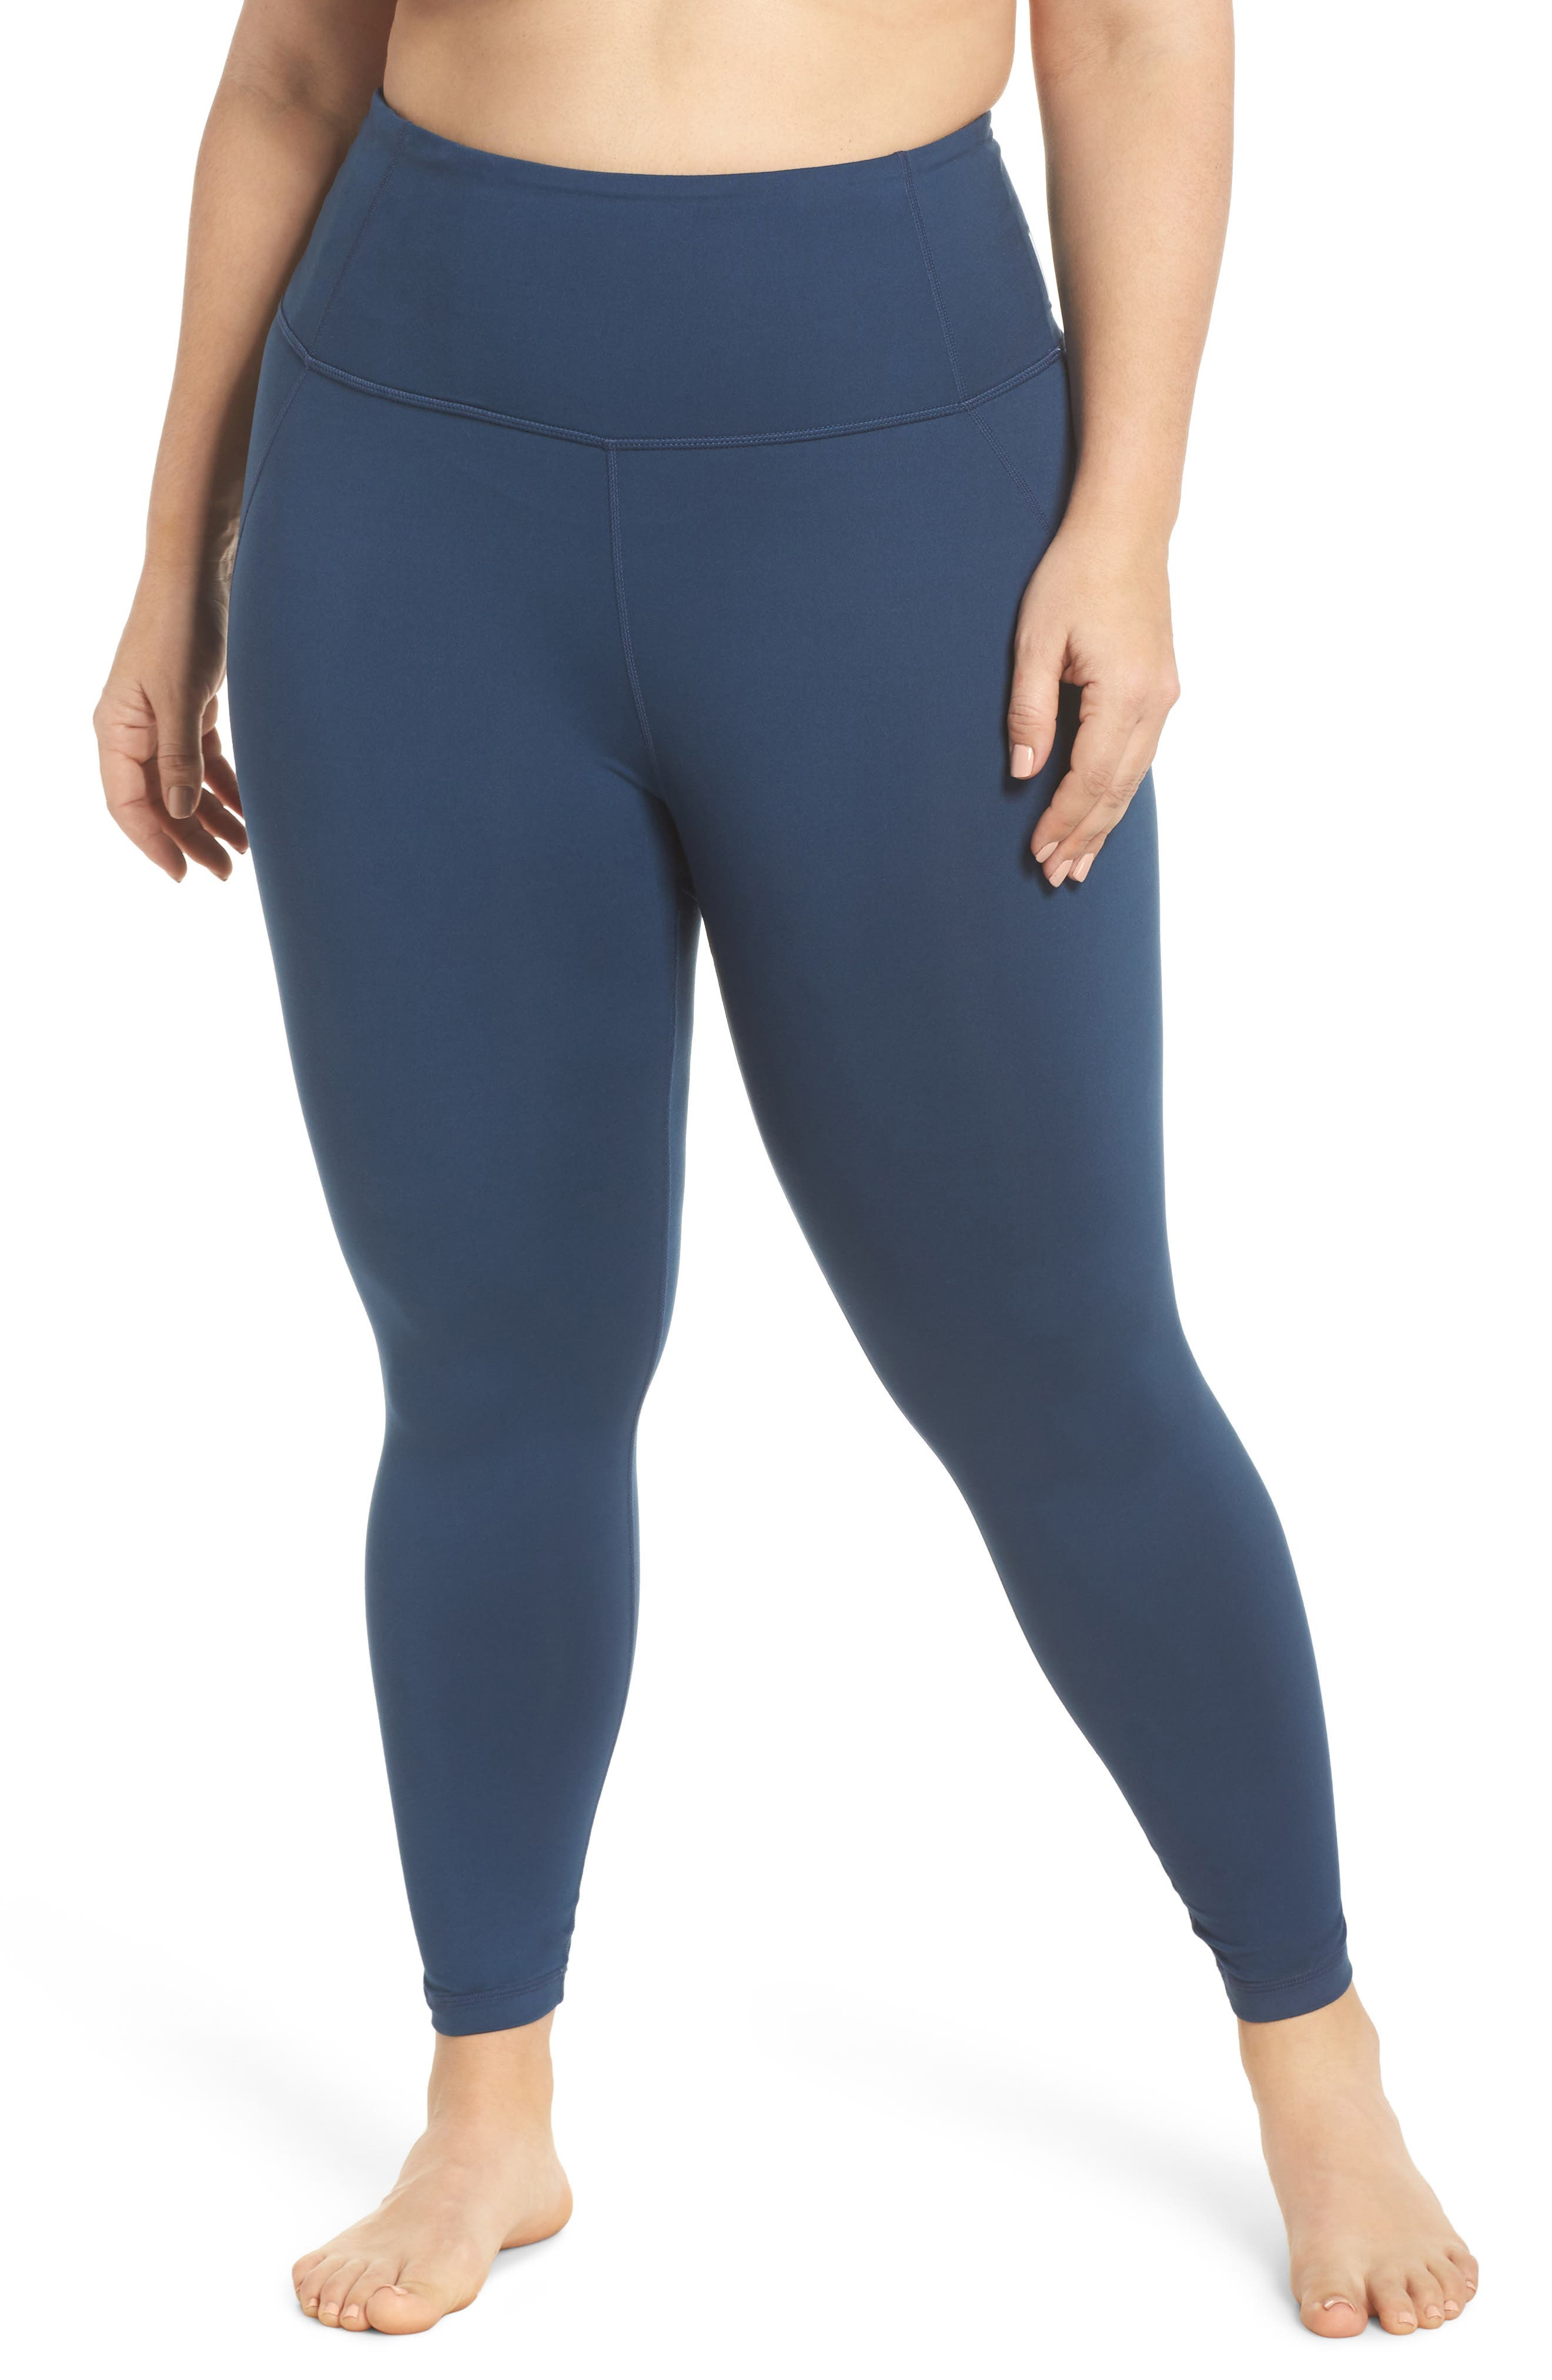 Lightweight High Waist Midi Leggings,                             Main thumbnail 1, color,                             Blue Insignia